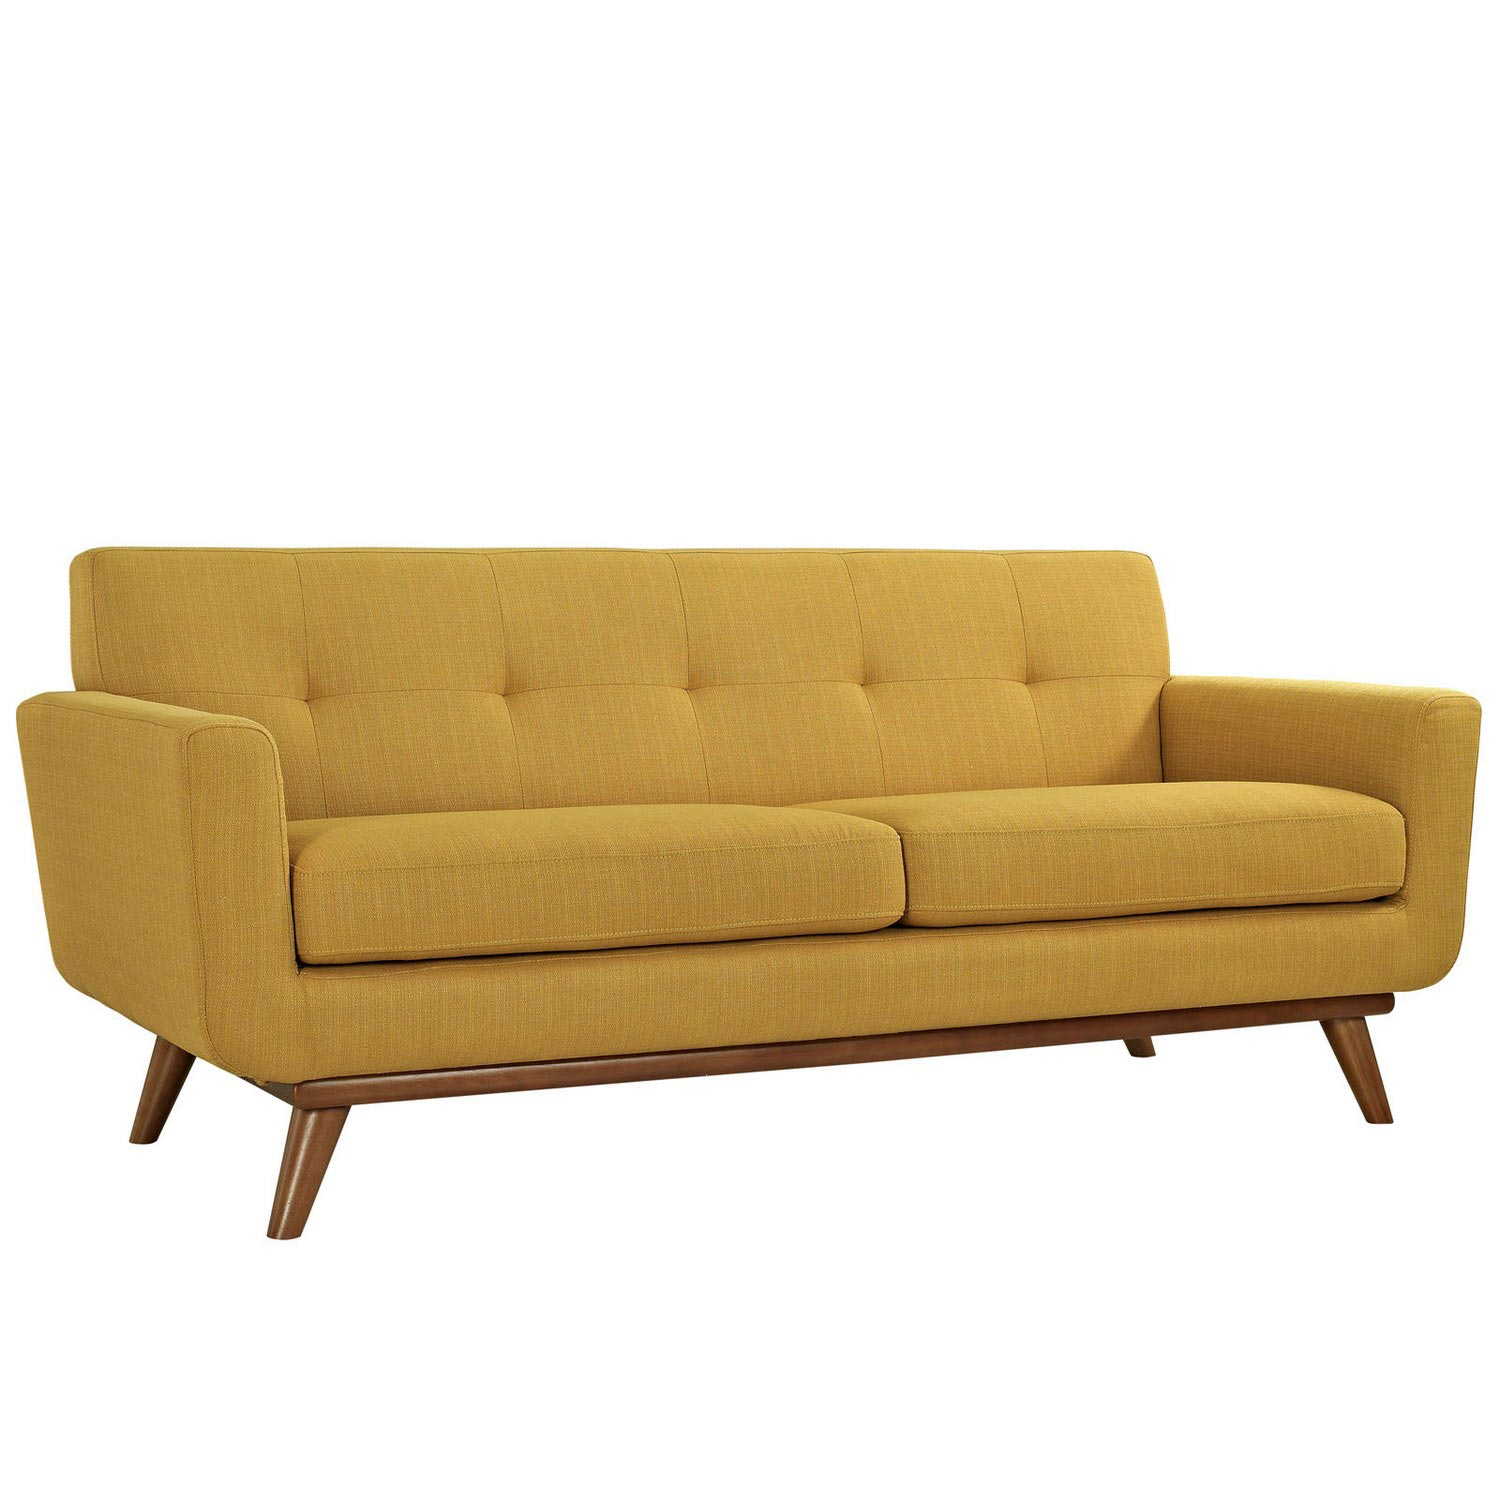 Modway Engage Armchairs and Loveseat Set of 3 - Citrus